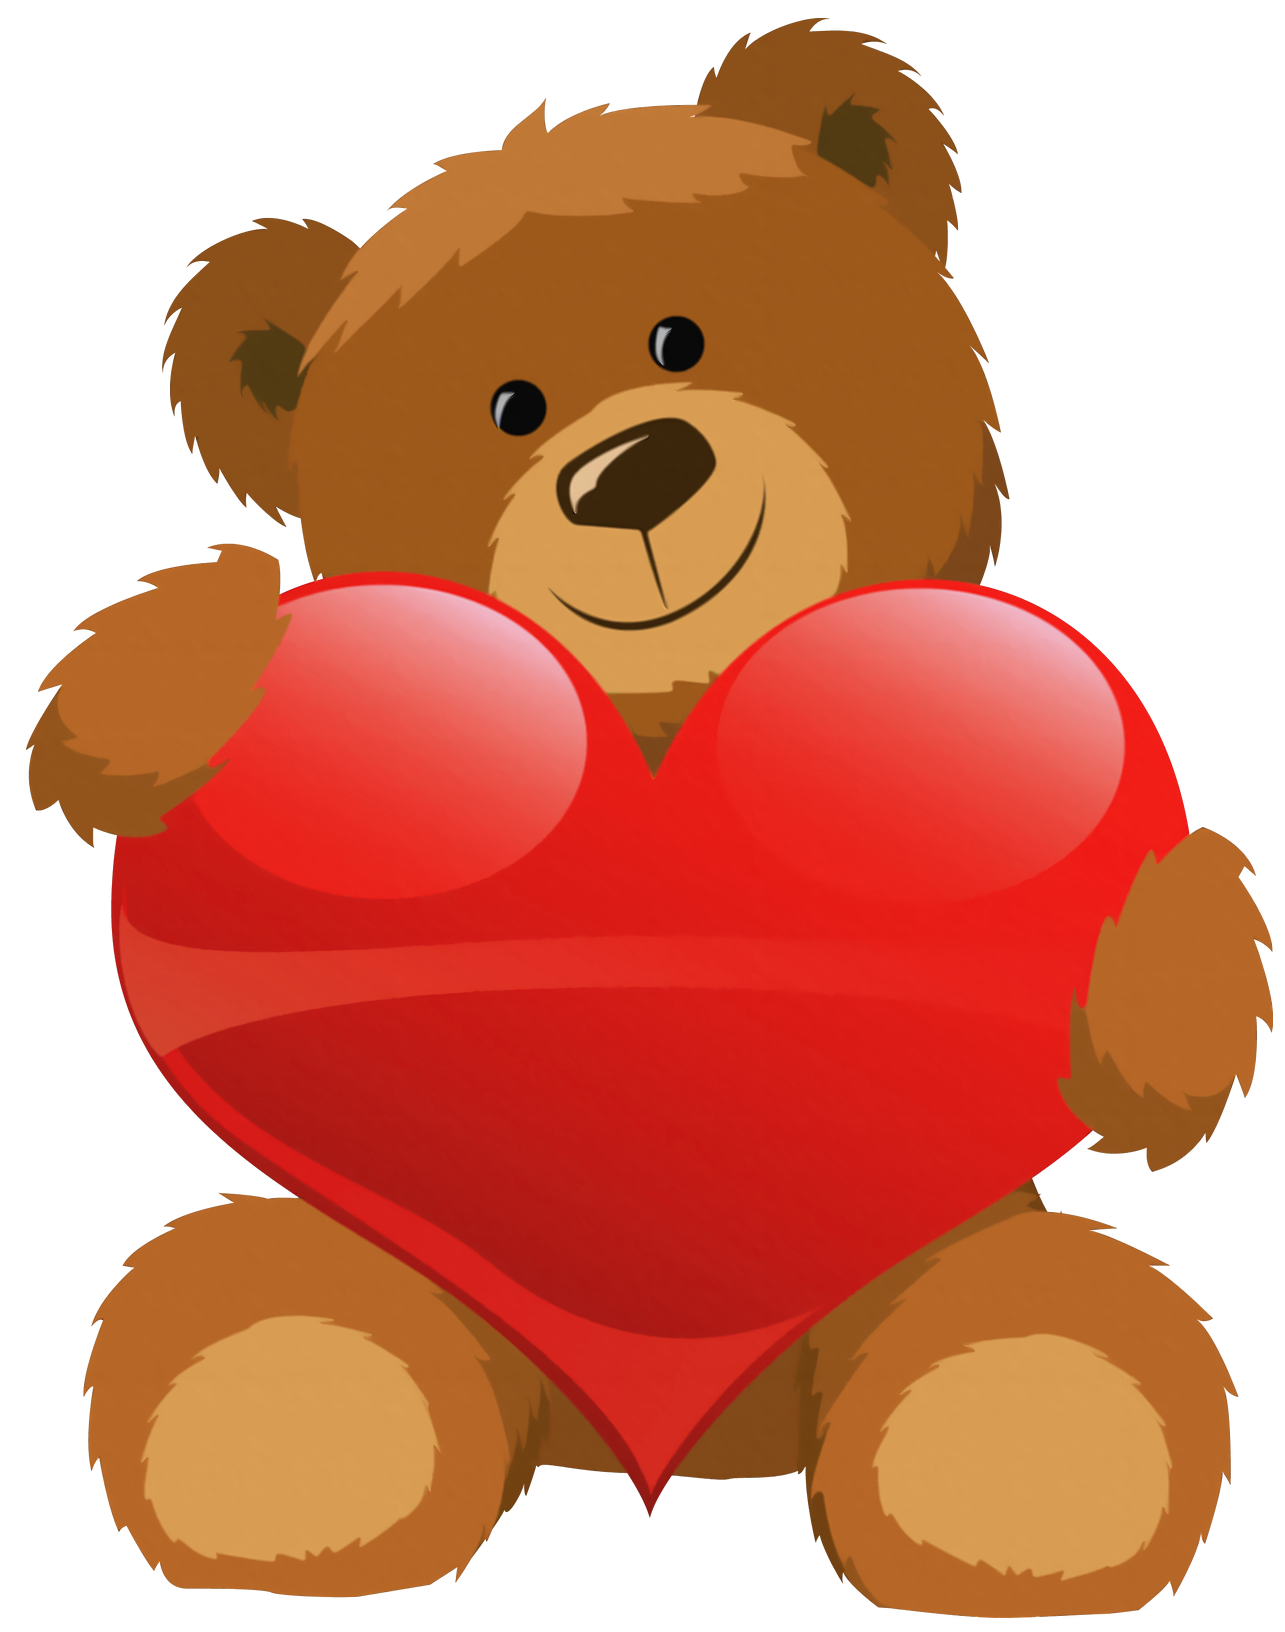 Cute Grizzly Bear Clipart Cute Bear With-Cute Grizzly Bear Clipart Cute Bear With Heart Png Clipart Picture Png-9